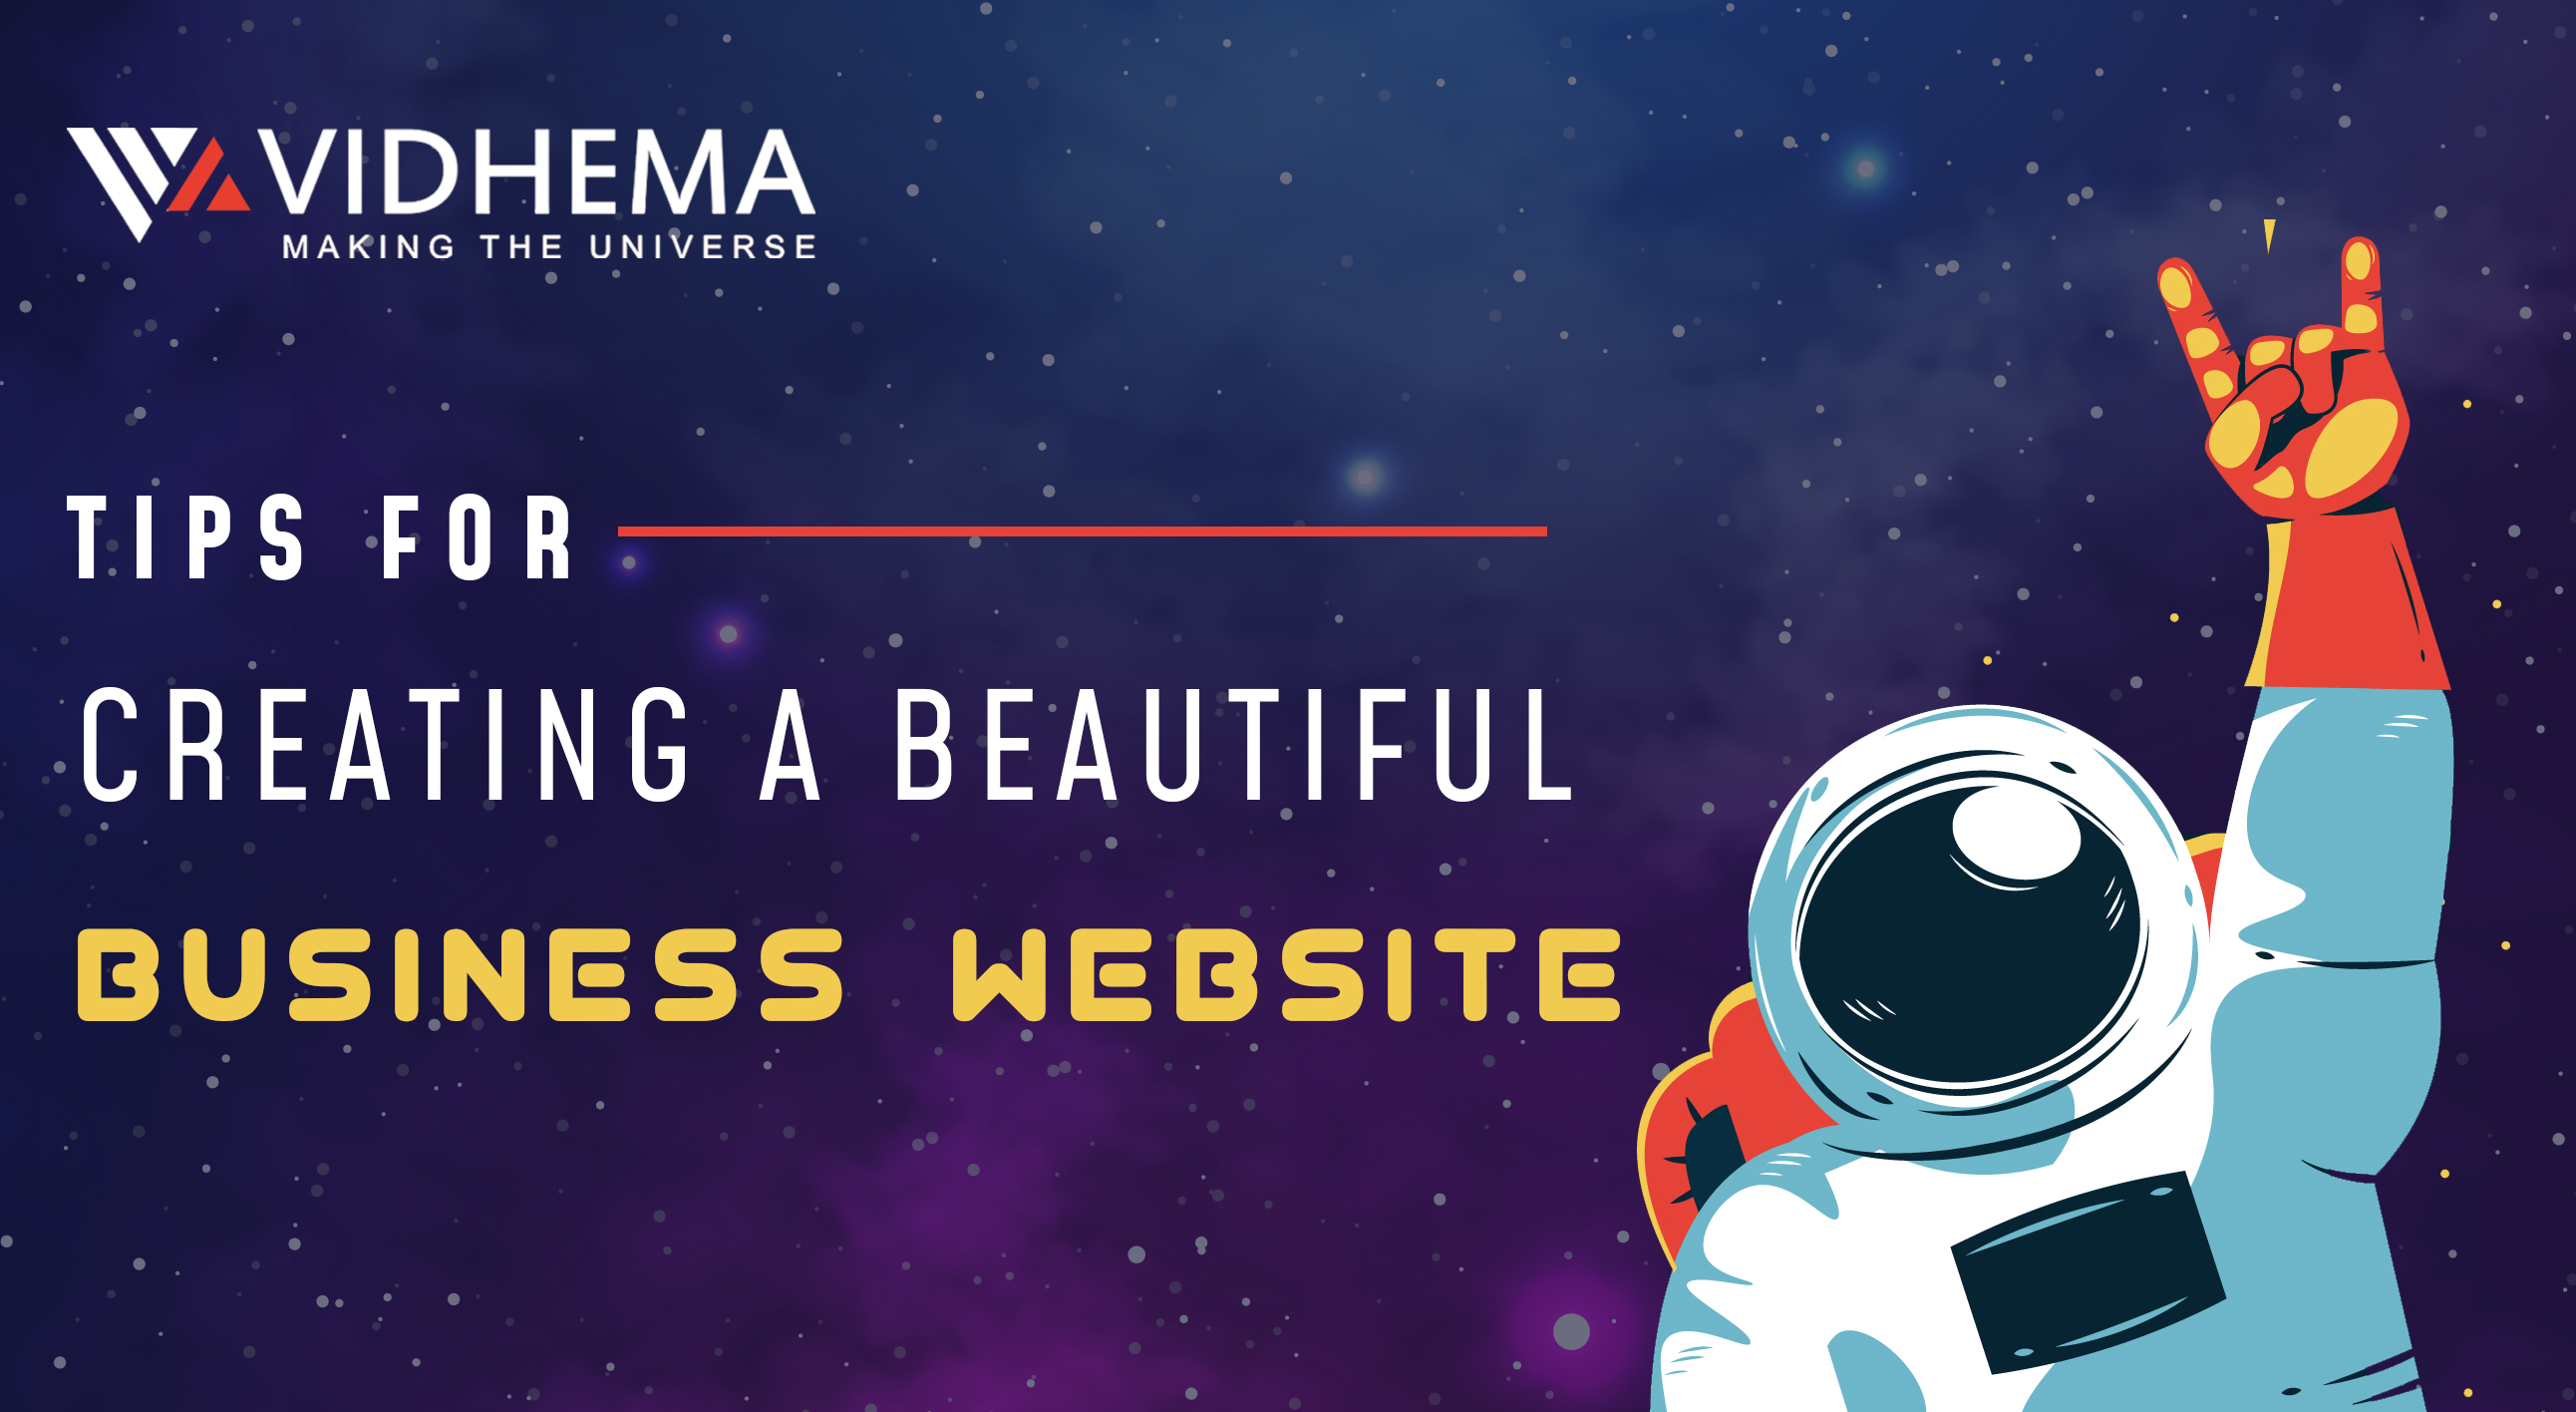 Tips for Creating a Beautiful Business Website